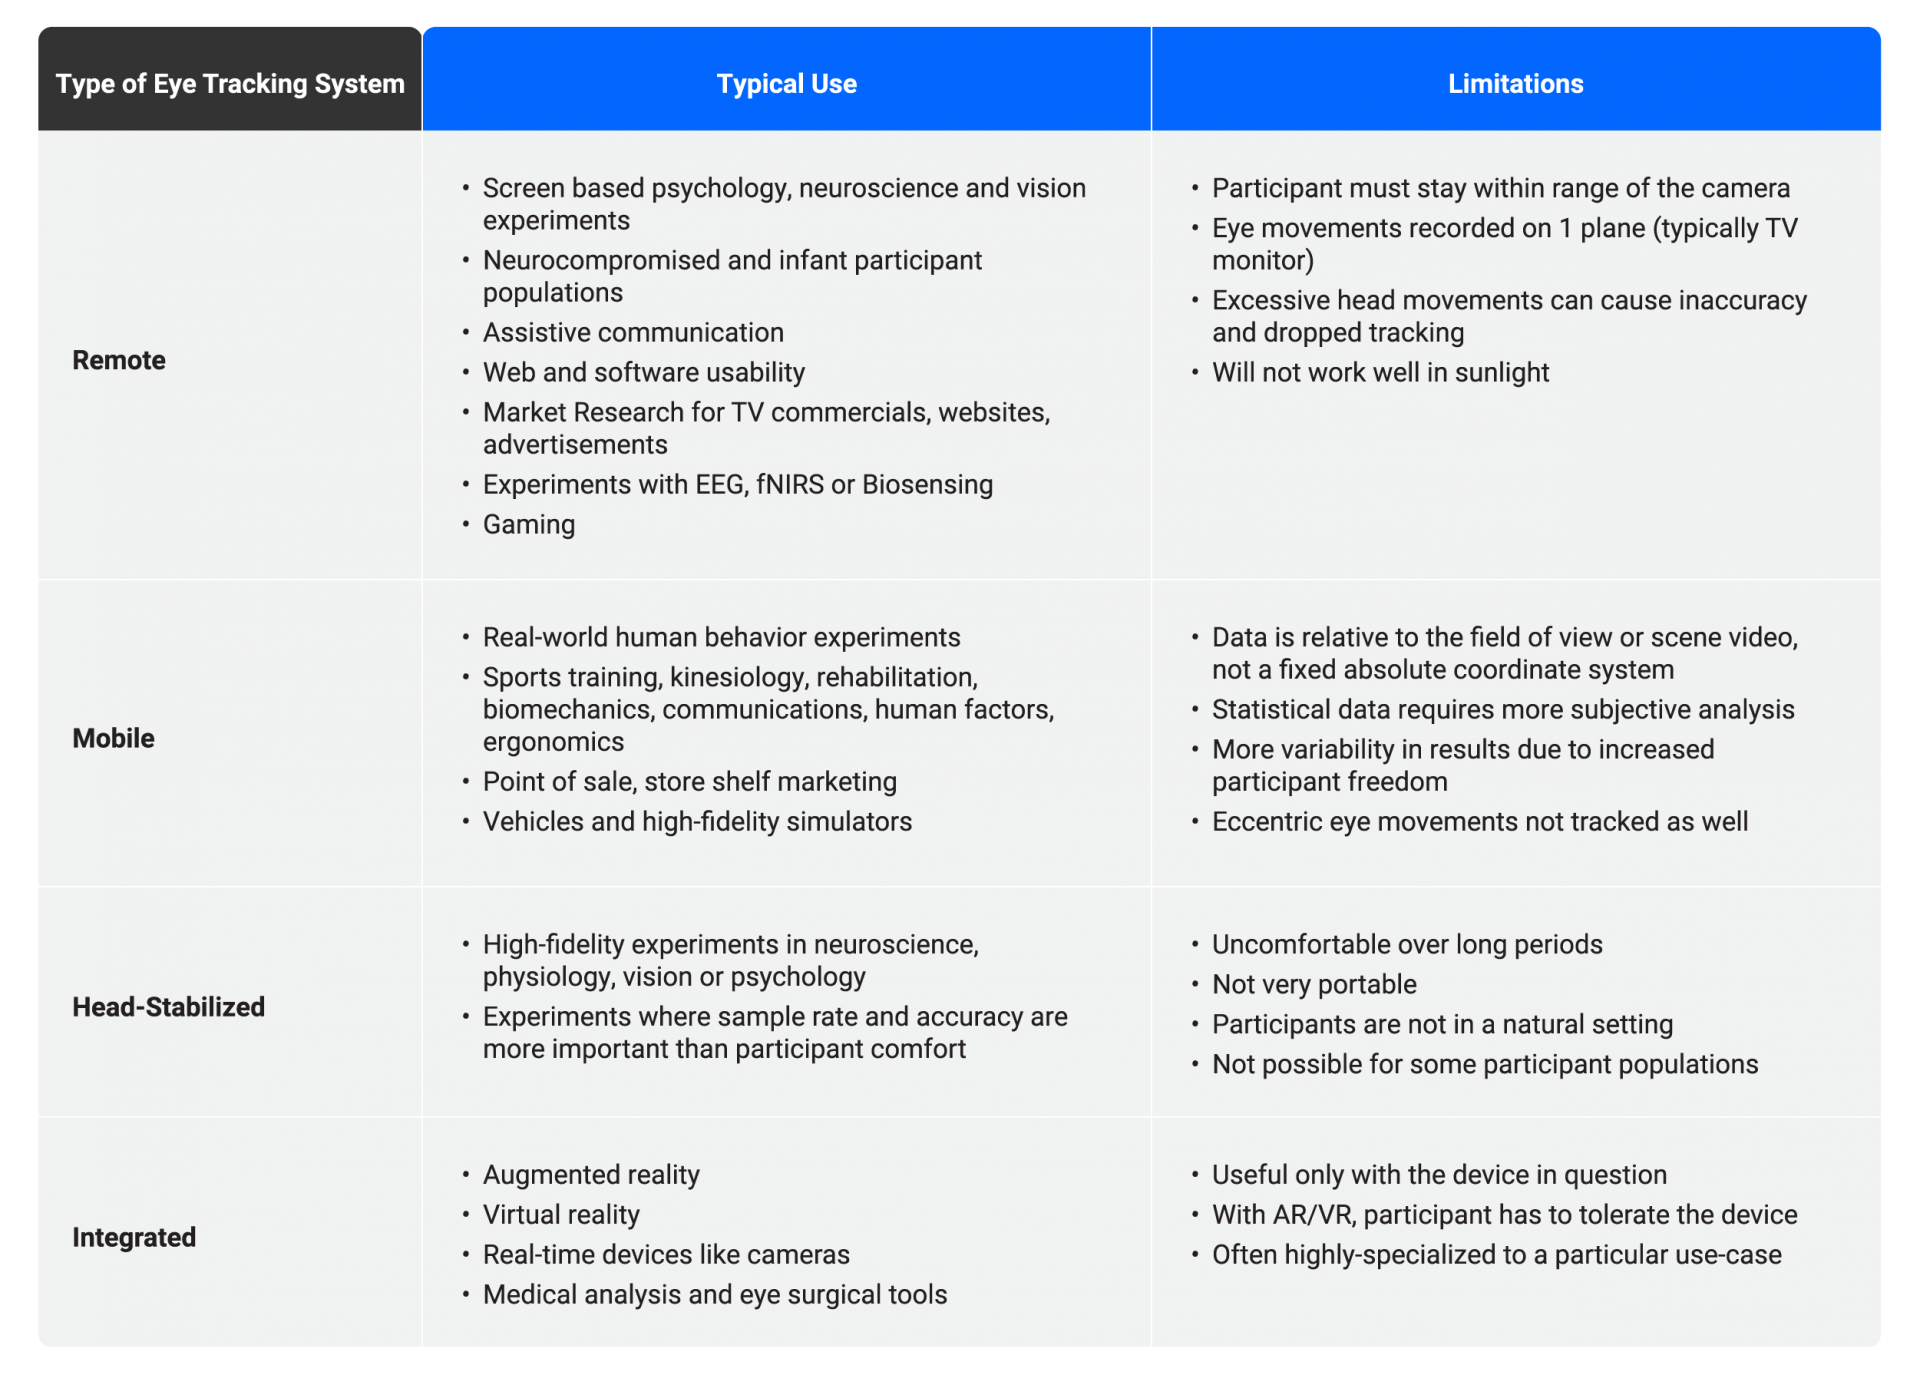 table on uses and limitations of eye tracking systems